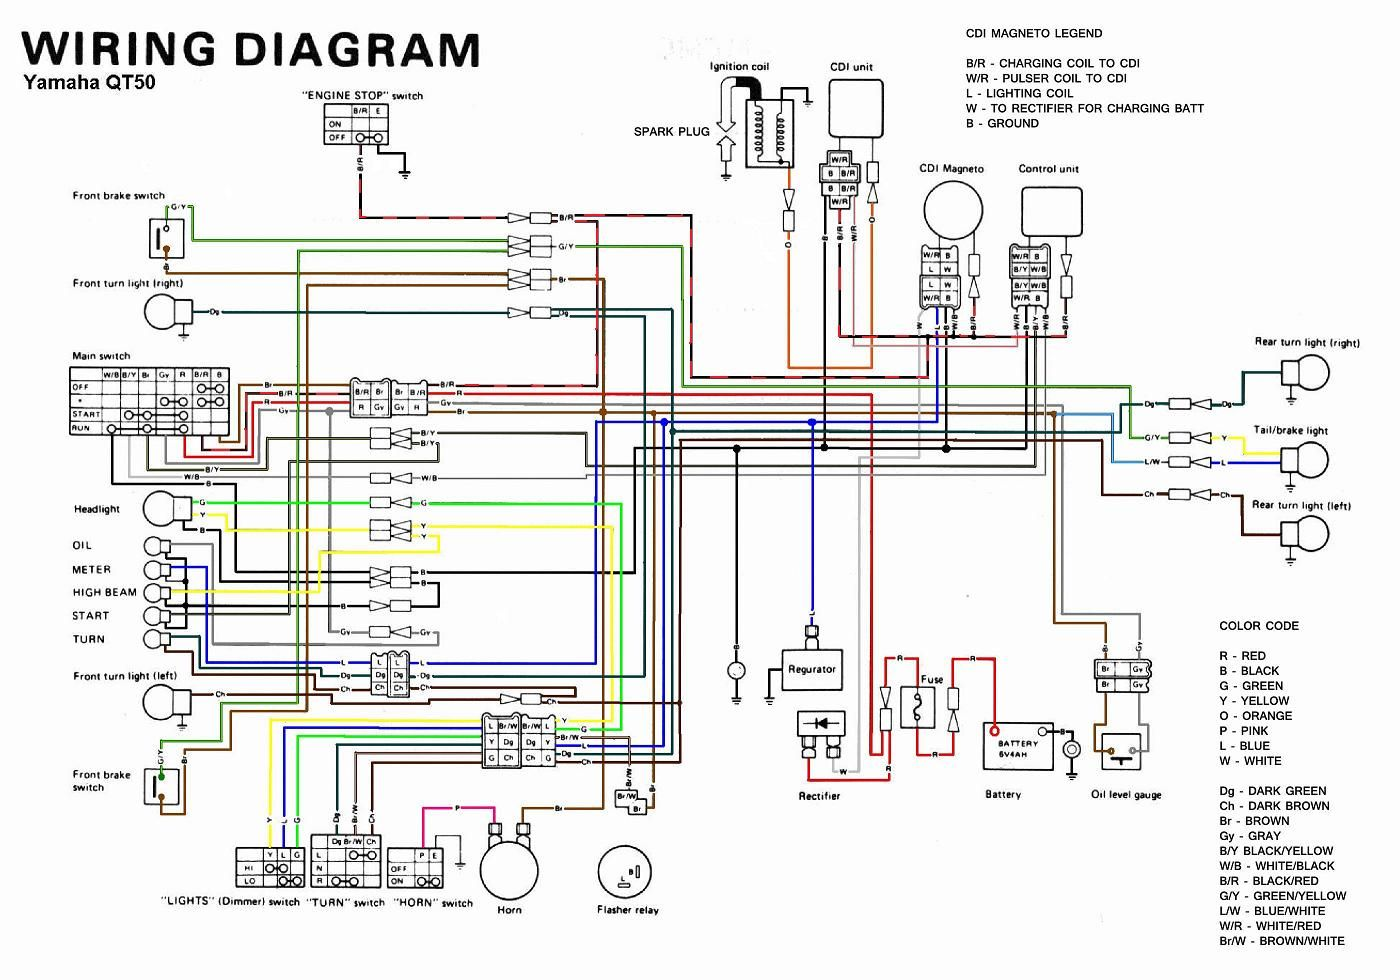 small resolution of 1981 yamaha wiring code wiring diagram features 1981 yamaha xj550 wiring diagram 1981 yamaha wiring code